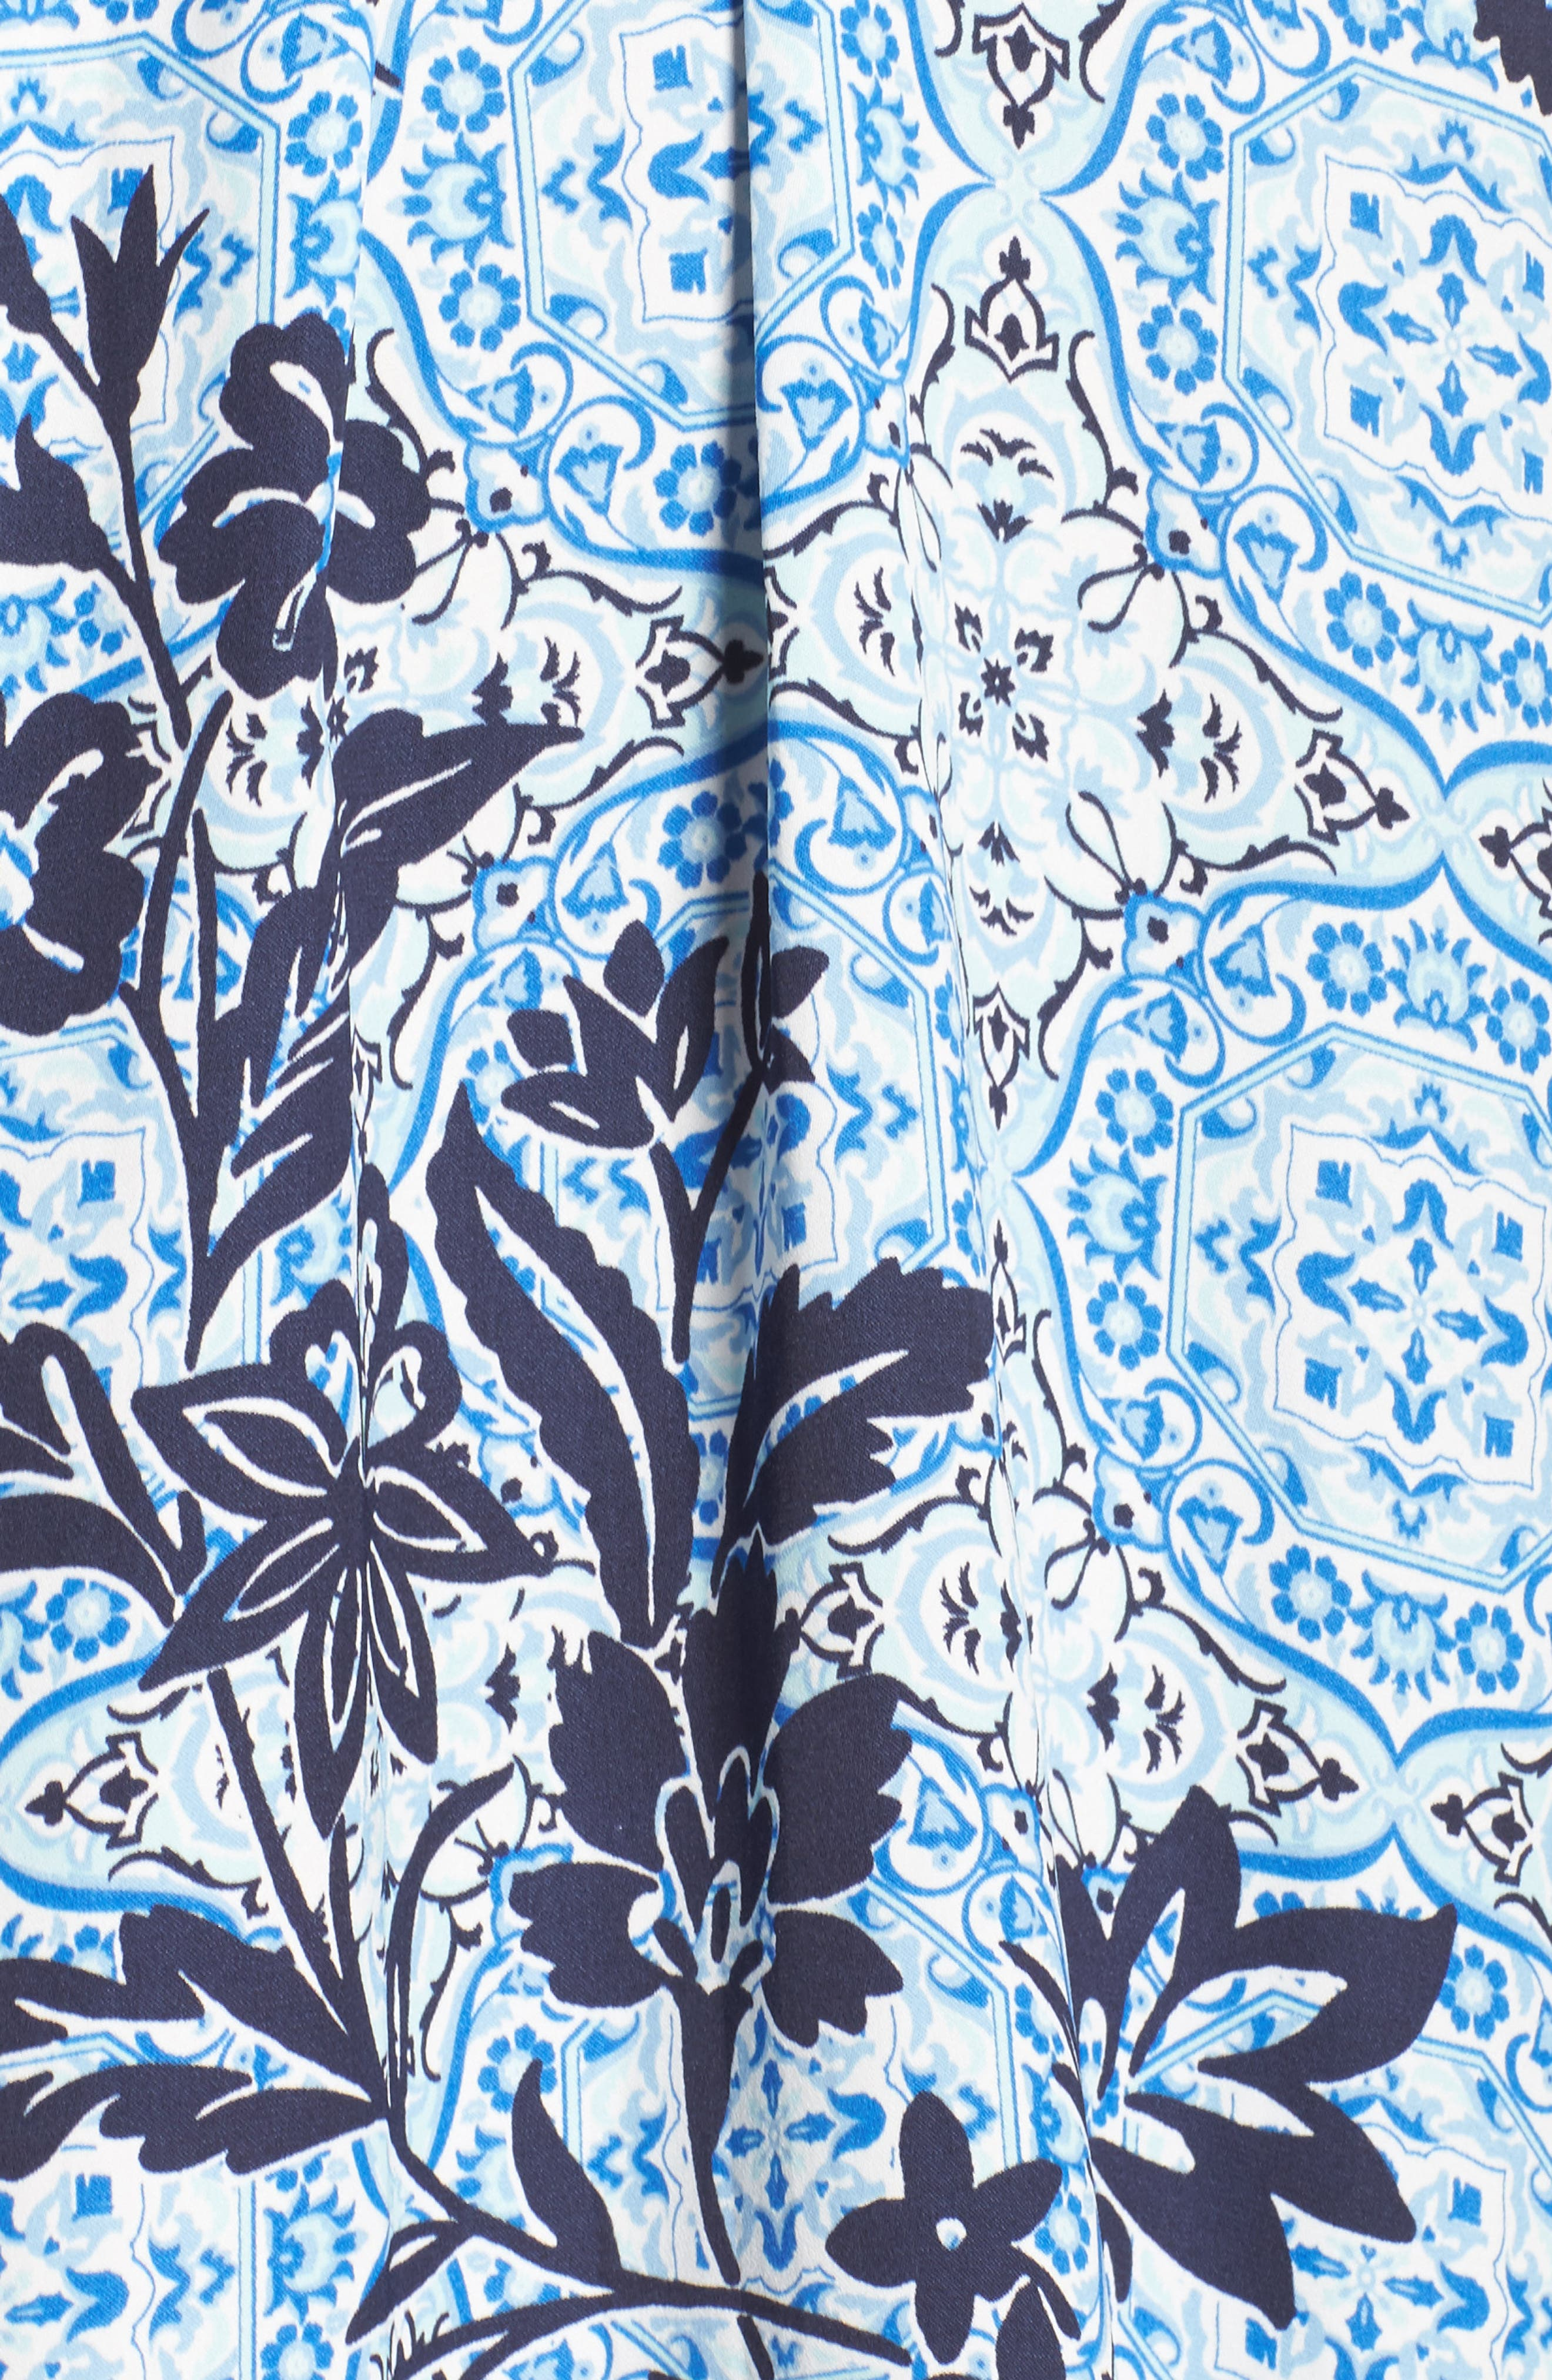 Sweet Dreams Satin Robe,                             Alternate thumbnail 5, color,                             Blue Palace Tile Floral